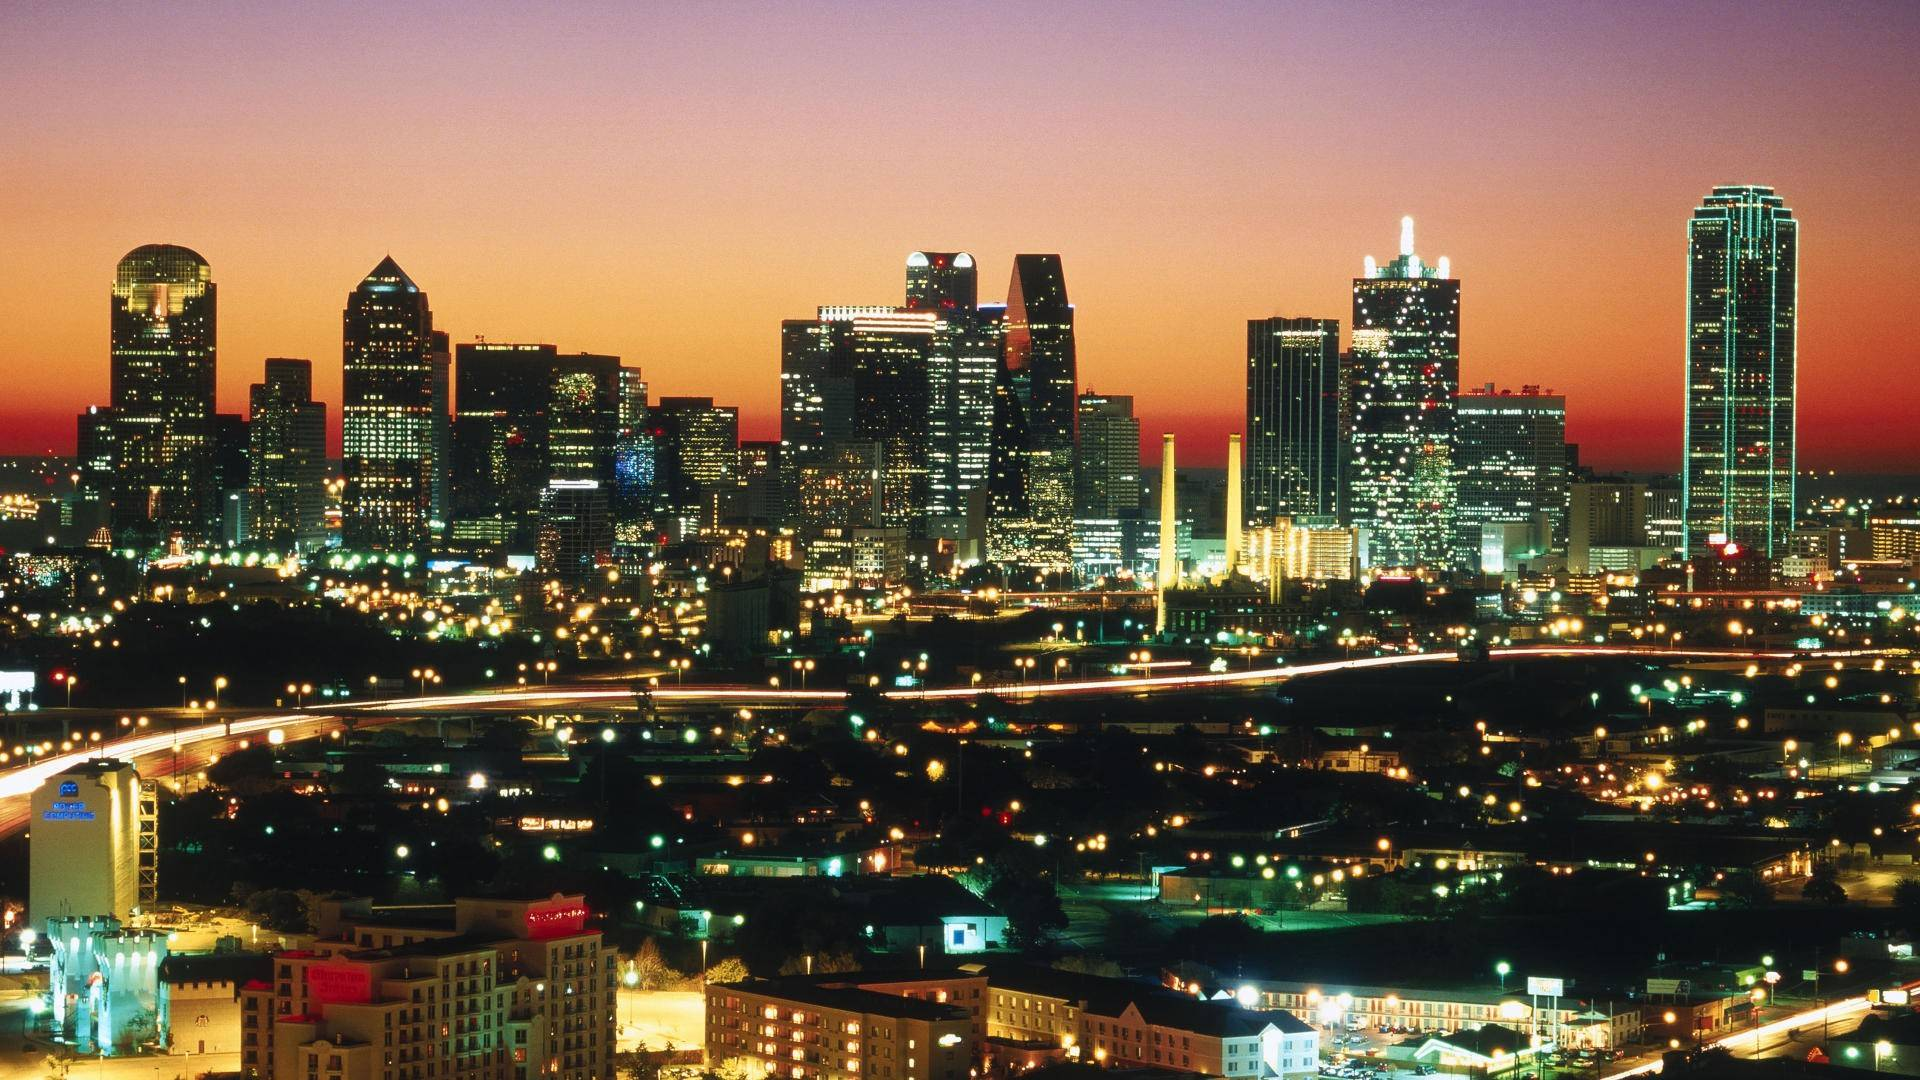 Texas Dallas 1920 1080 HD Wallpaper